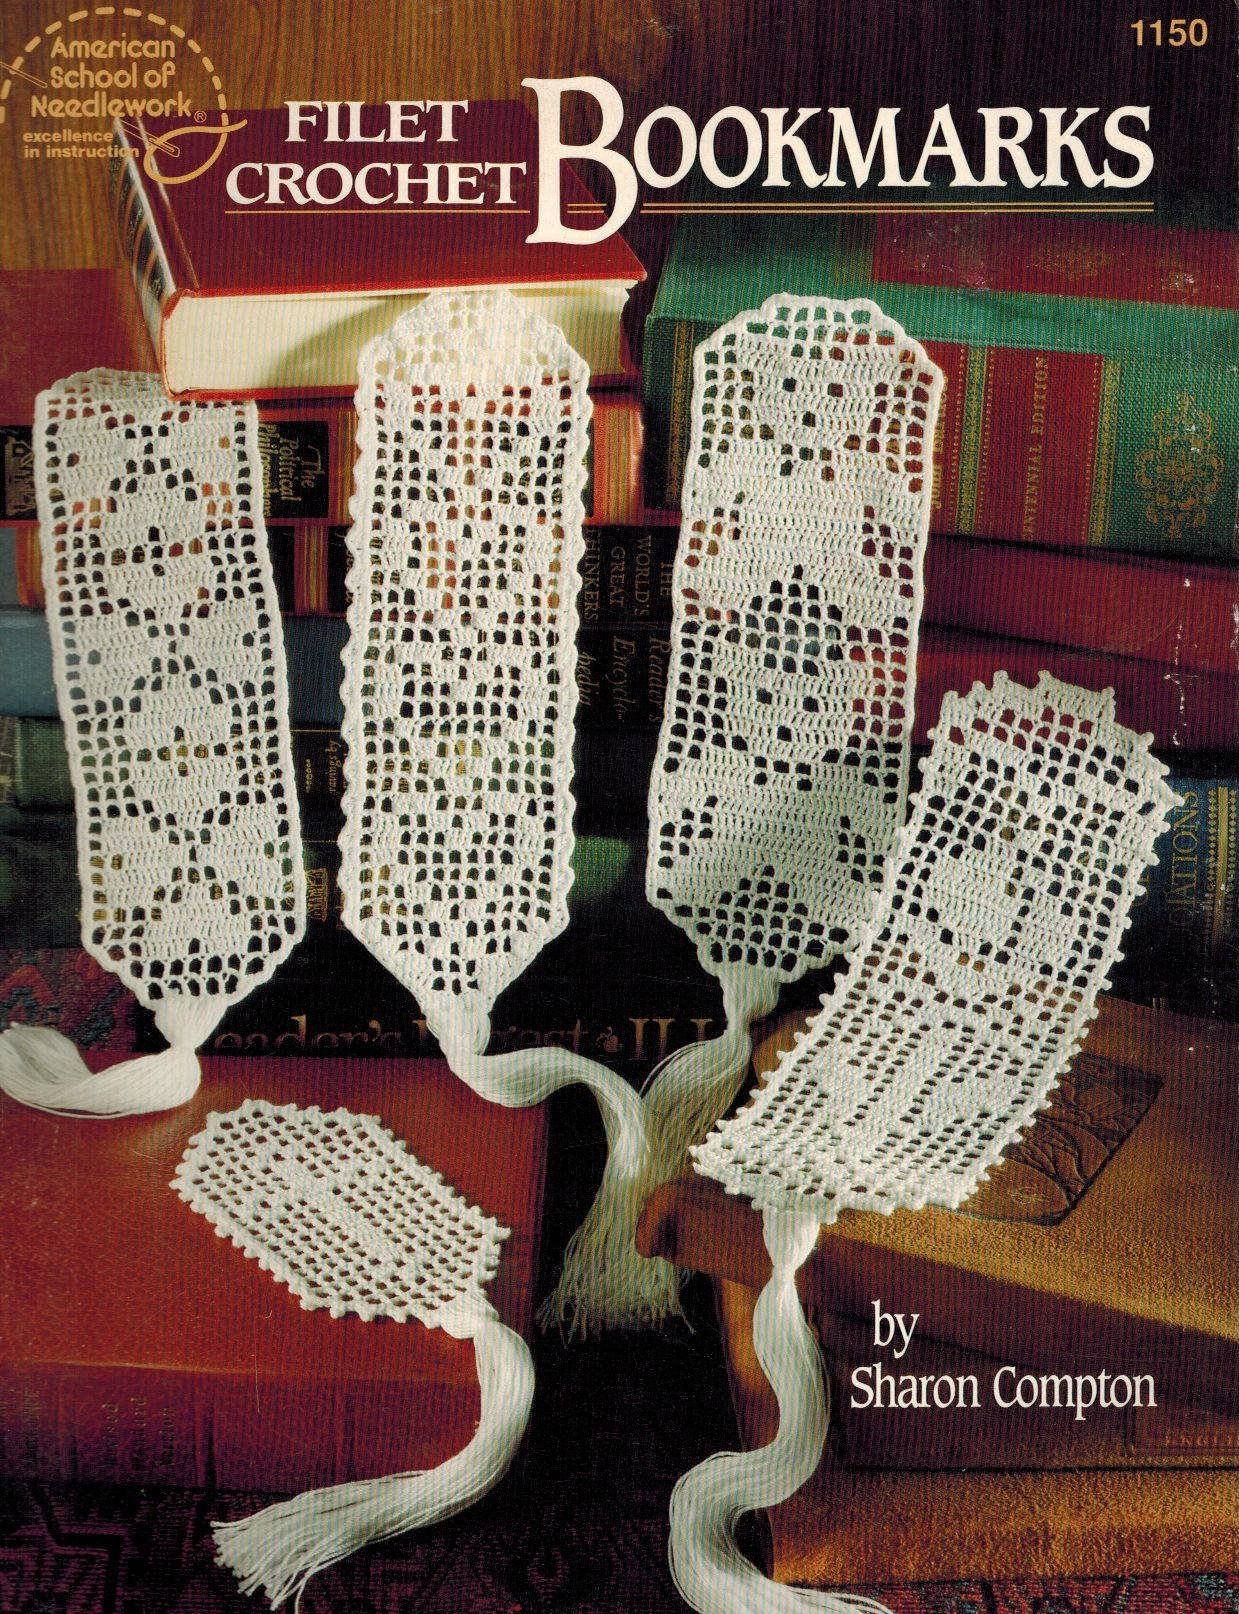 Filet crochet bookmarks: Sharon Compton: 9780881954883